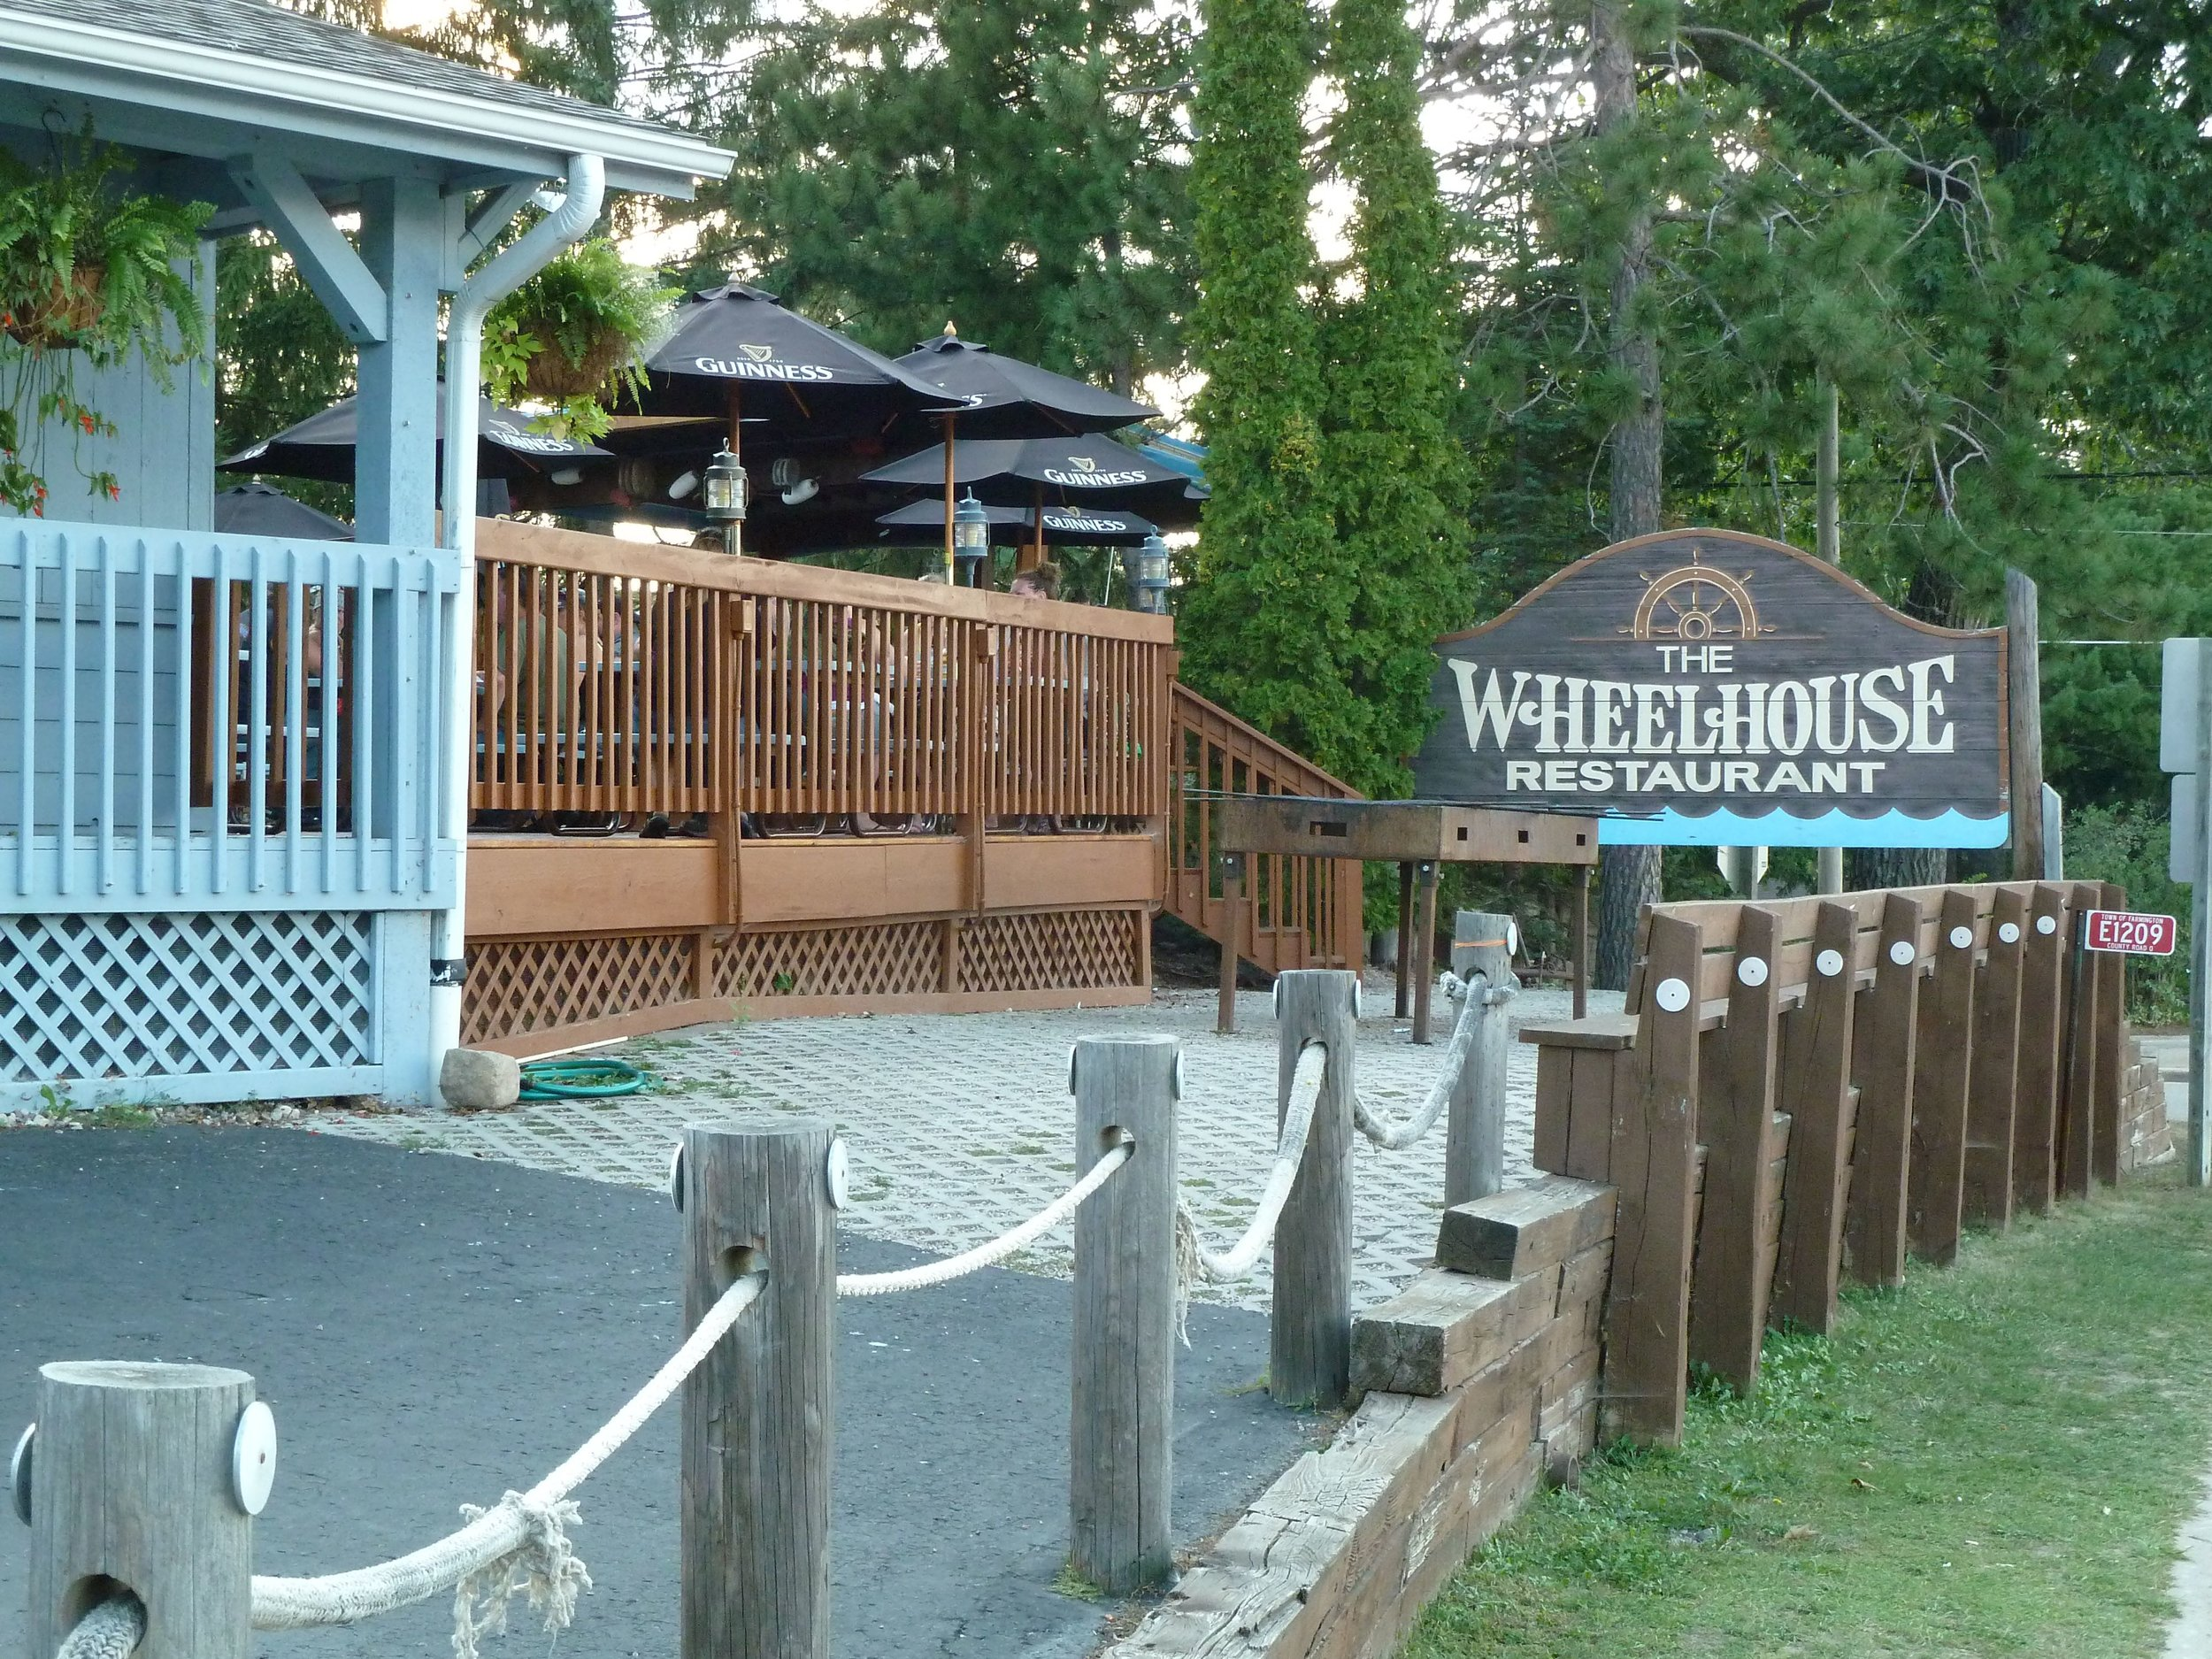 1. Wheelhouse Restaurant